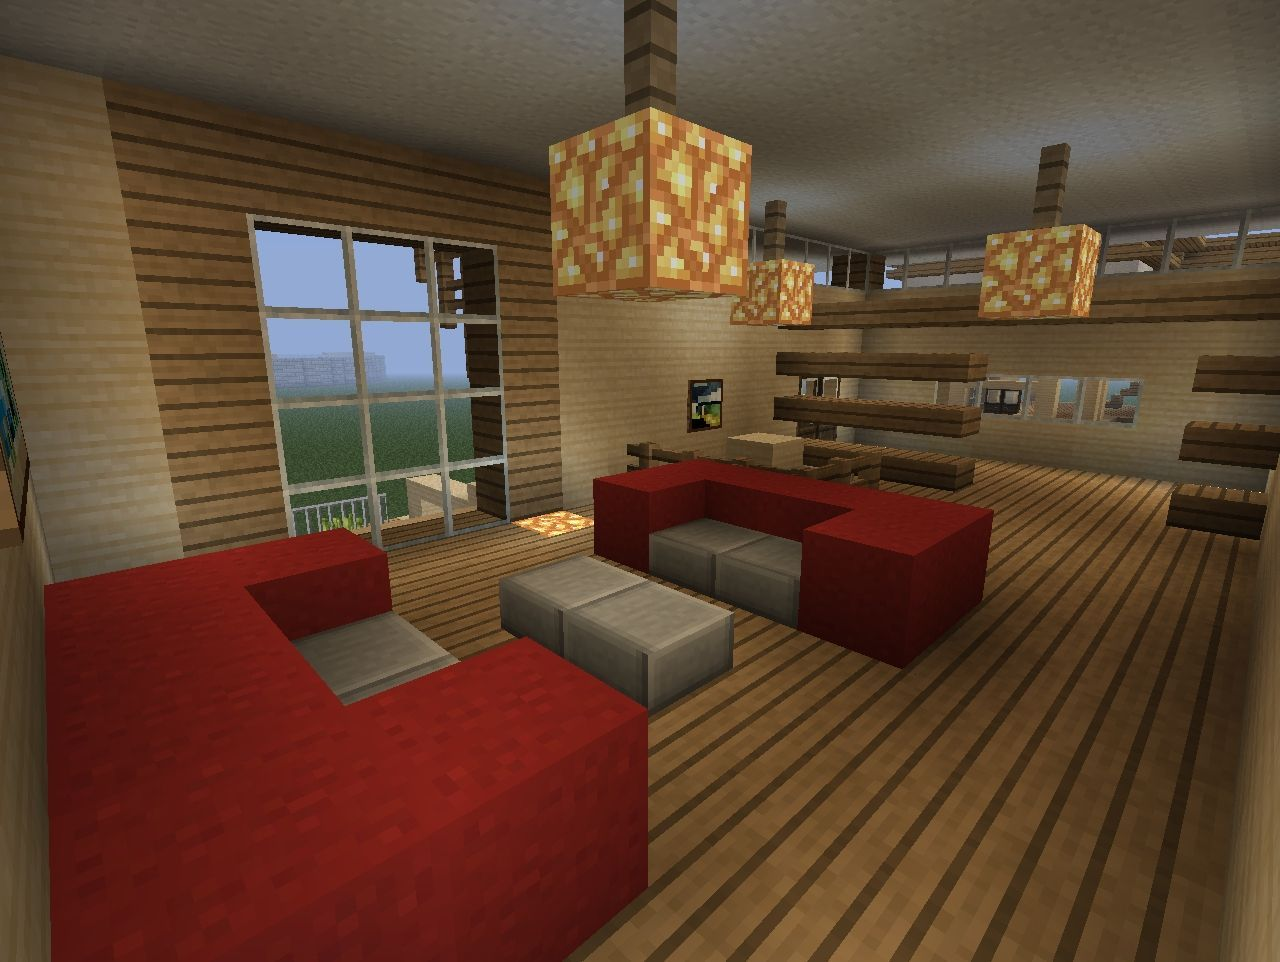 Small Modern Home Minecraft Project Minecraft Interior Design Minecraft Room Minecraft Room Decor